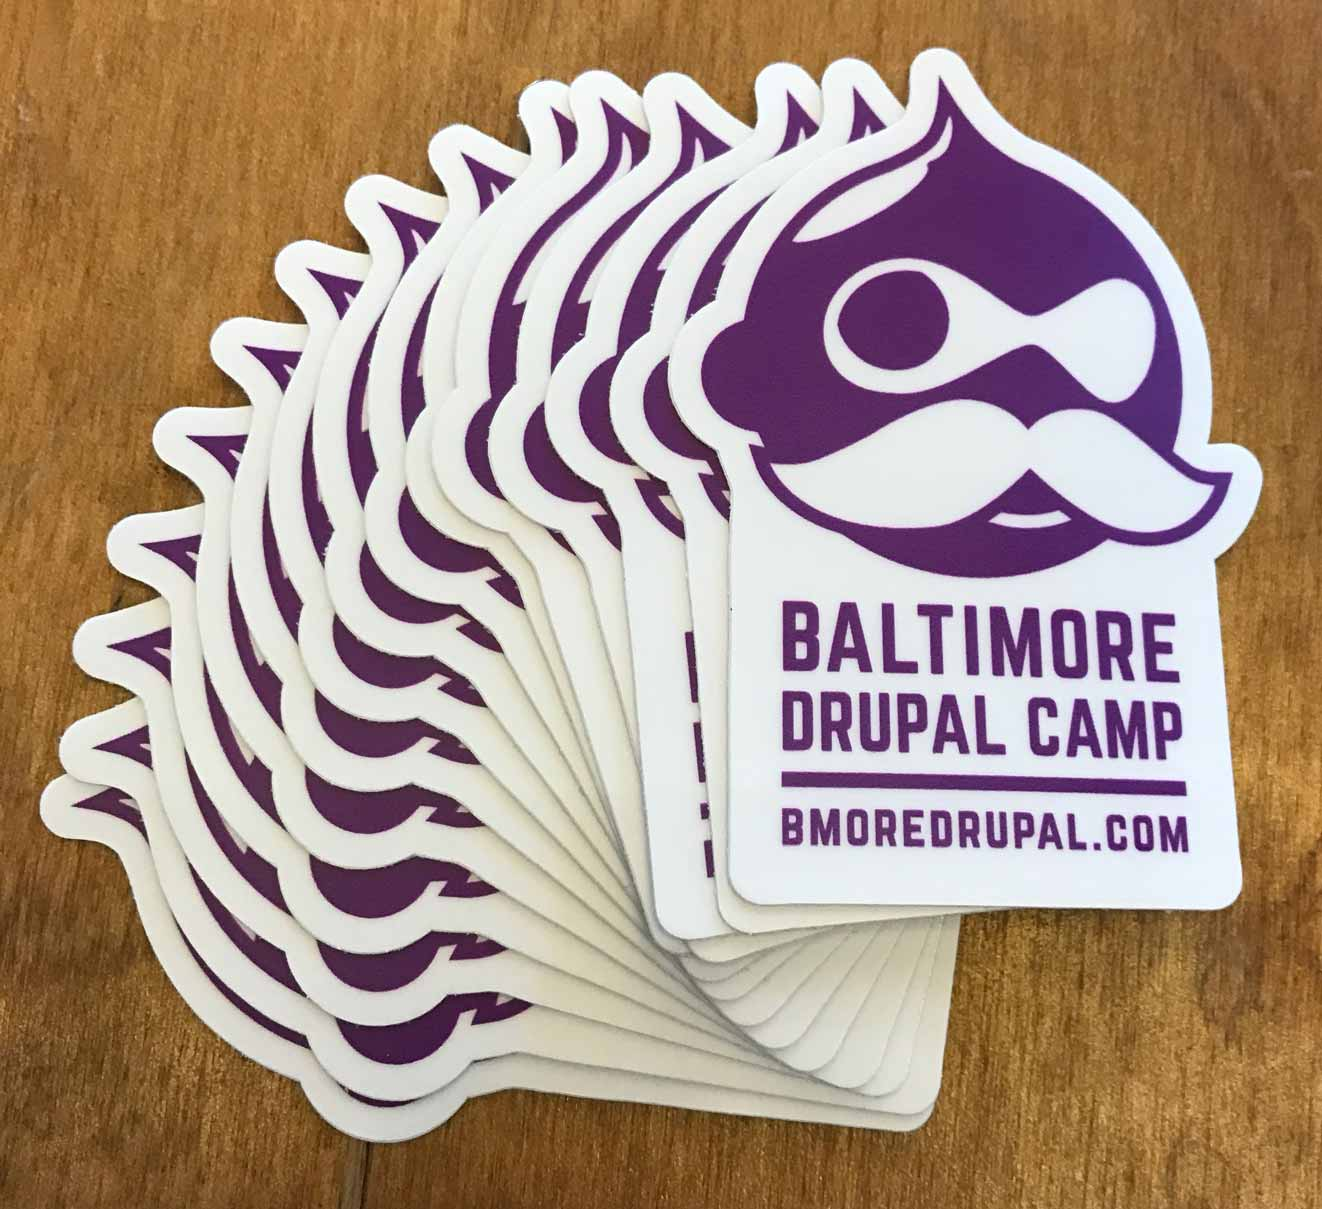 Baltimore Drupal Camp stickers with Drupal Boh icon